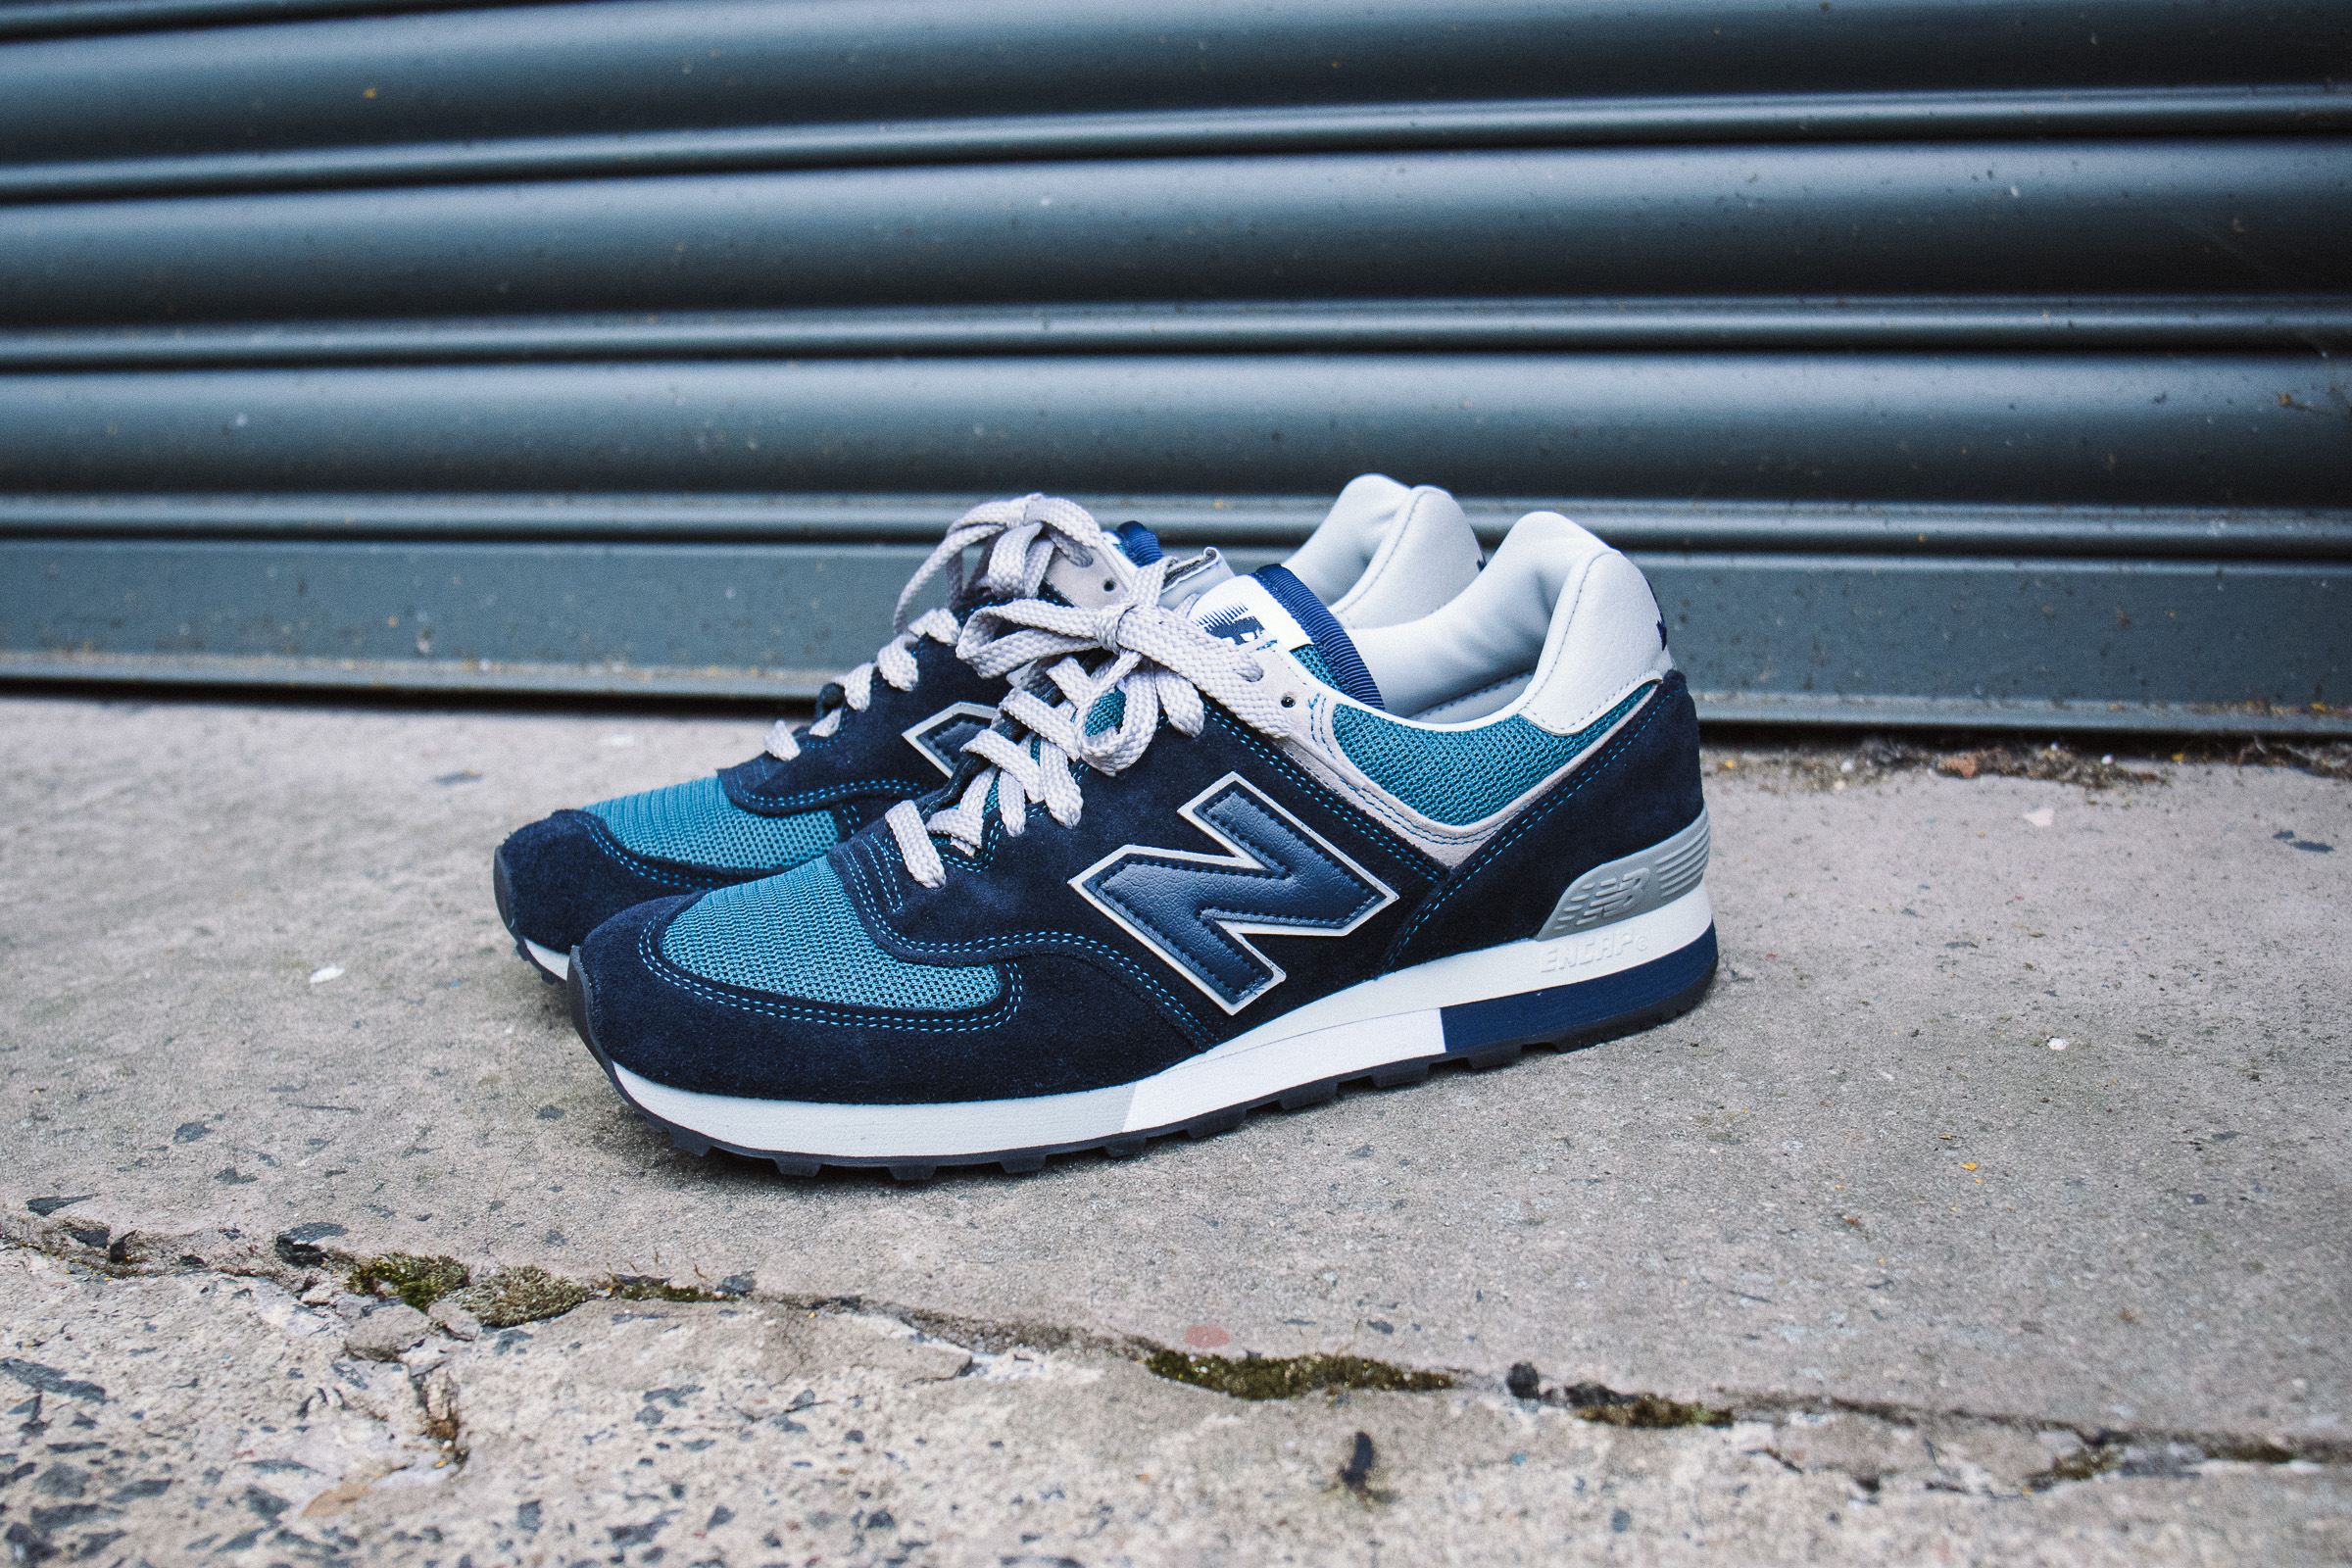 NEW BALANCE 576 OG NAVY 30TH ANNIVERSARY